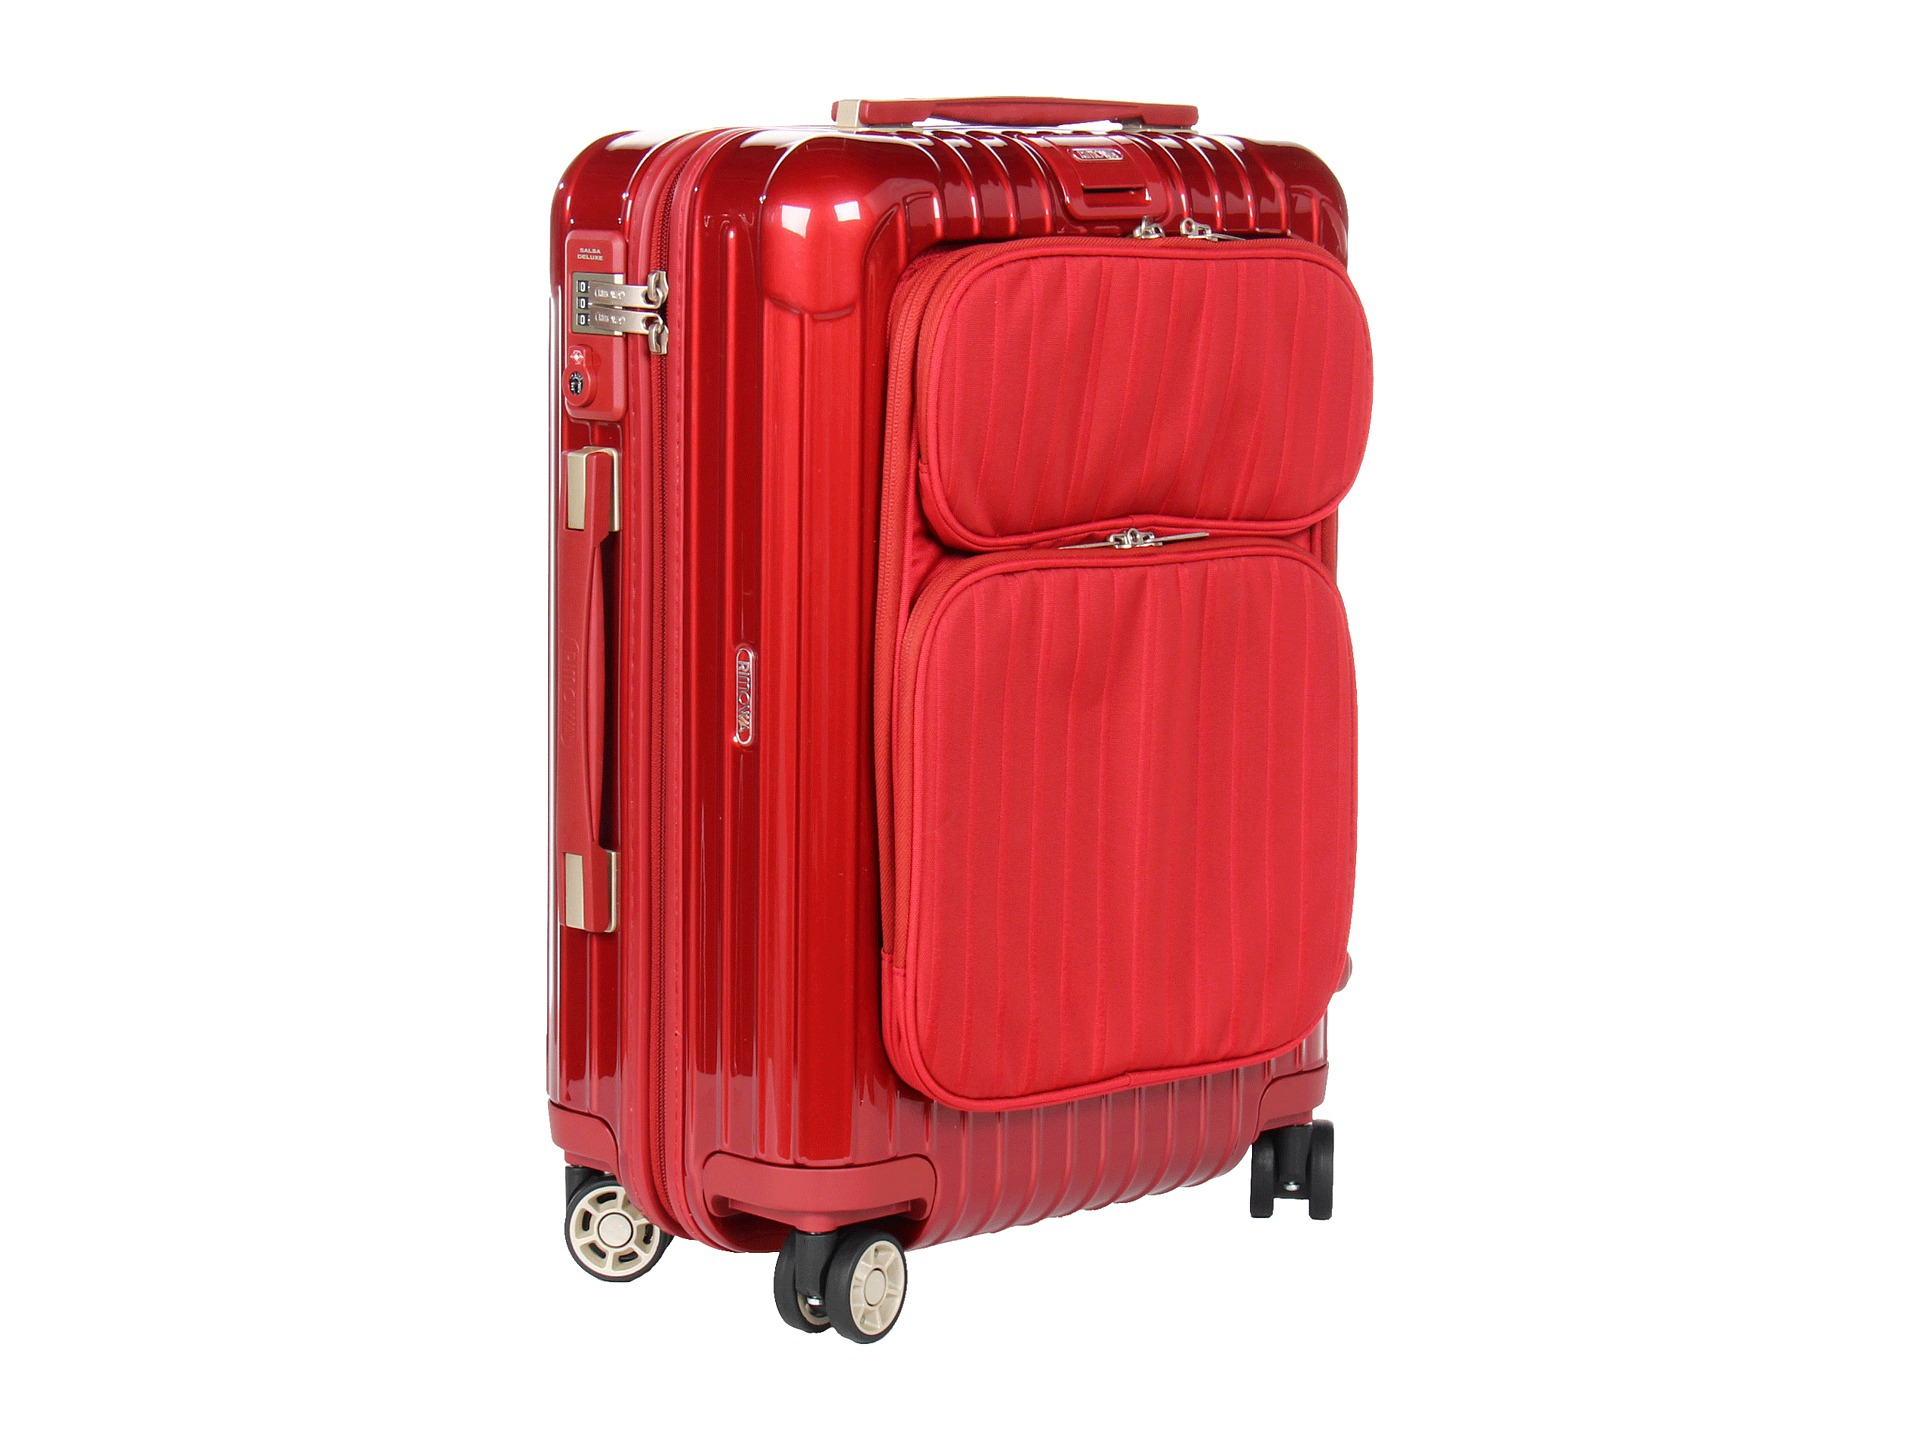 rimowa salsa deluxe hybrid 21 cabin multiwheel in red. Black Bedroom Furniture Sets. Home Design Ideas